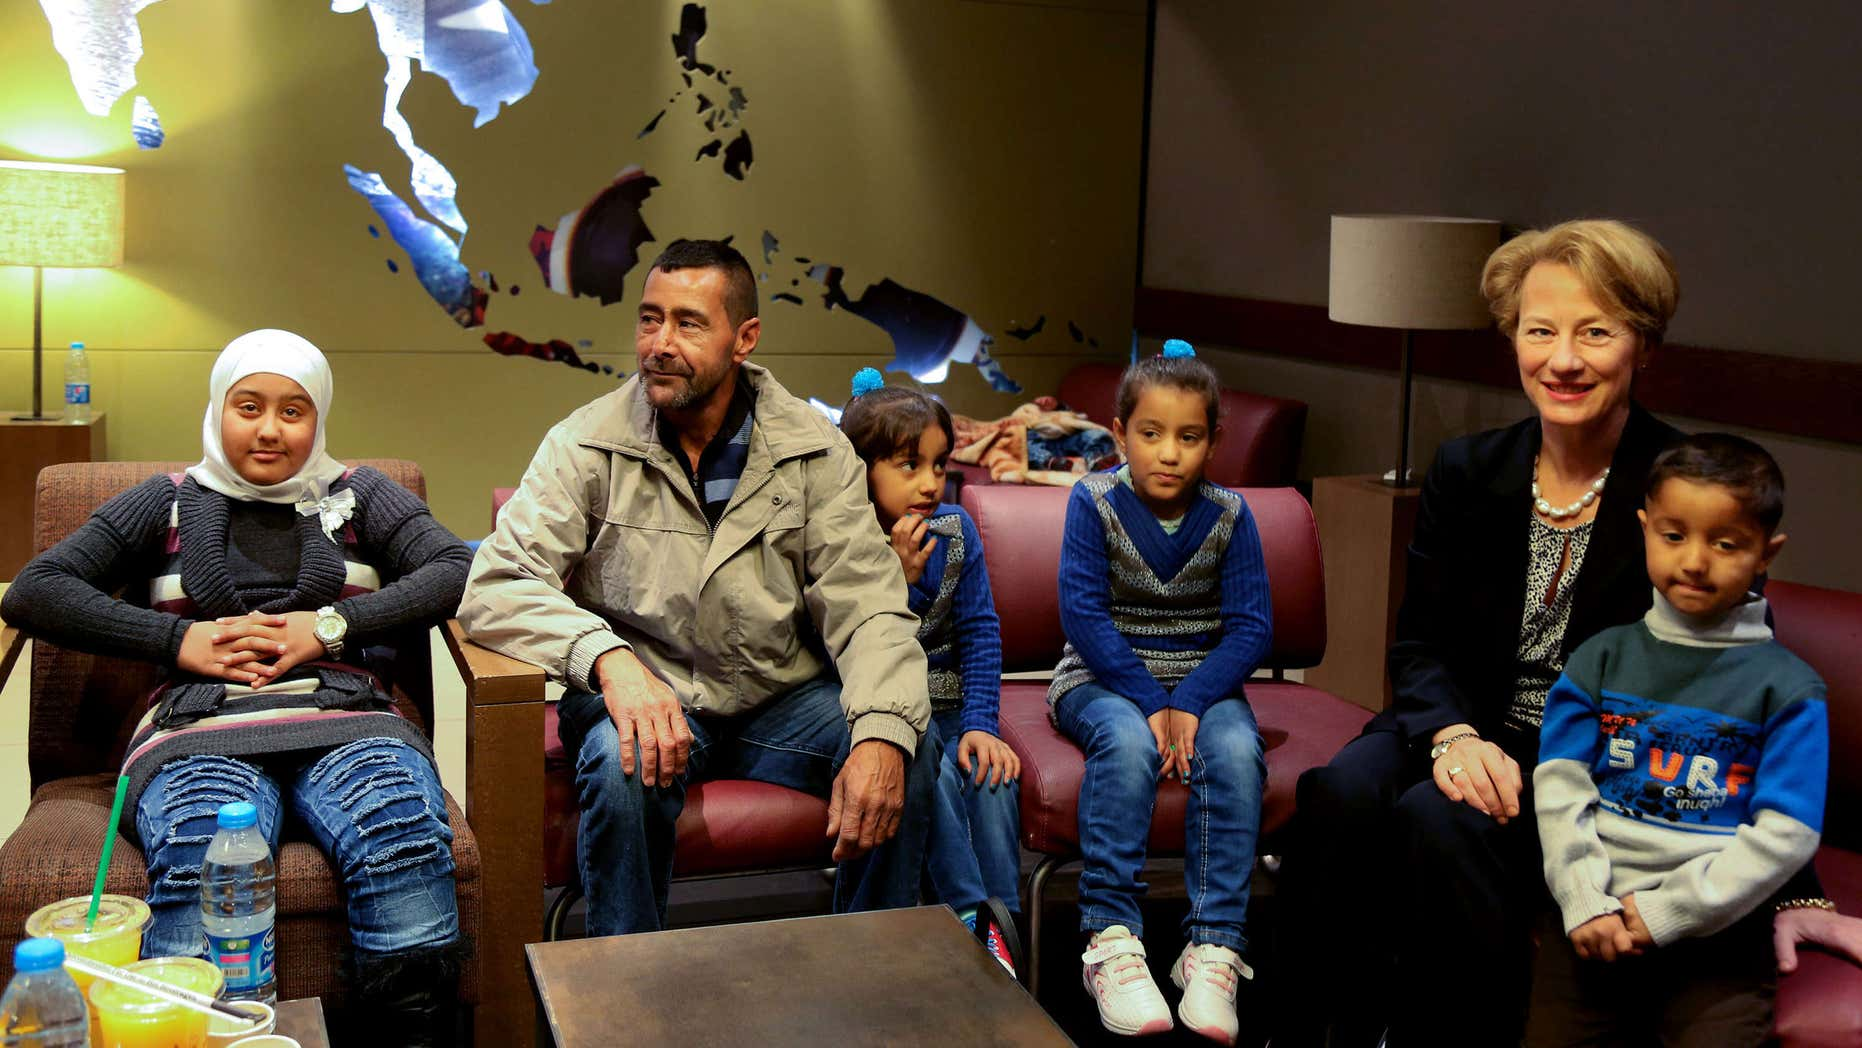 April 6, 2016: U.S. Ambassador to Jordan Alice Wells, right, meets with Syrian refugee Ahmad al-Abboud, center, and his family at the International Airport of Amman, Jordan.